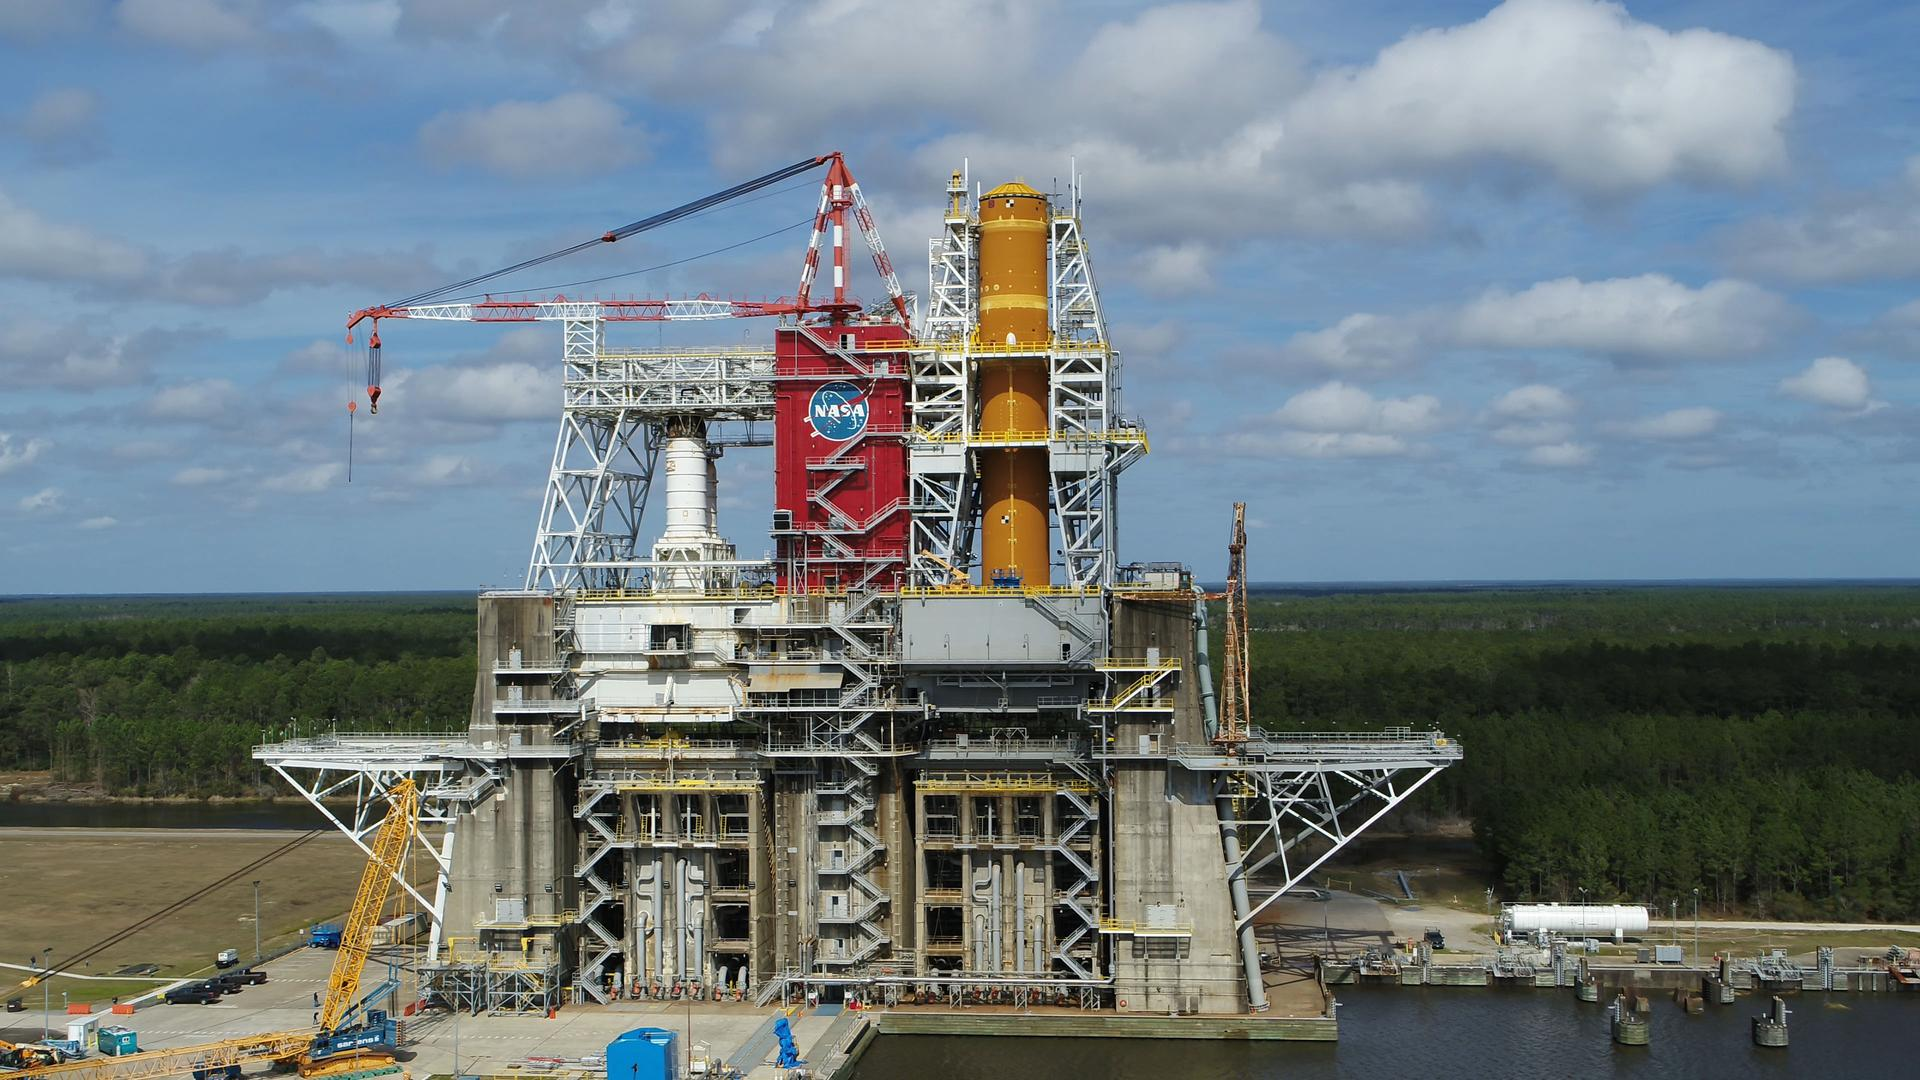 SLS Core Stage nearing home stretch for Green Run tanking test